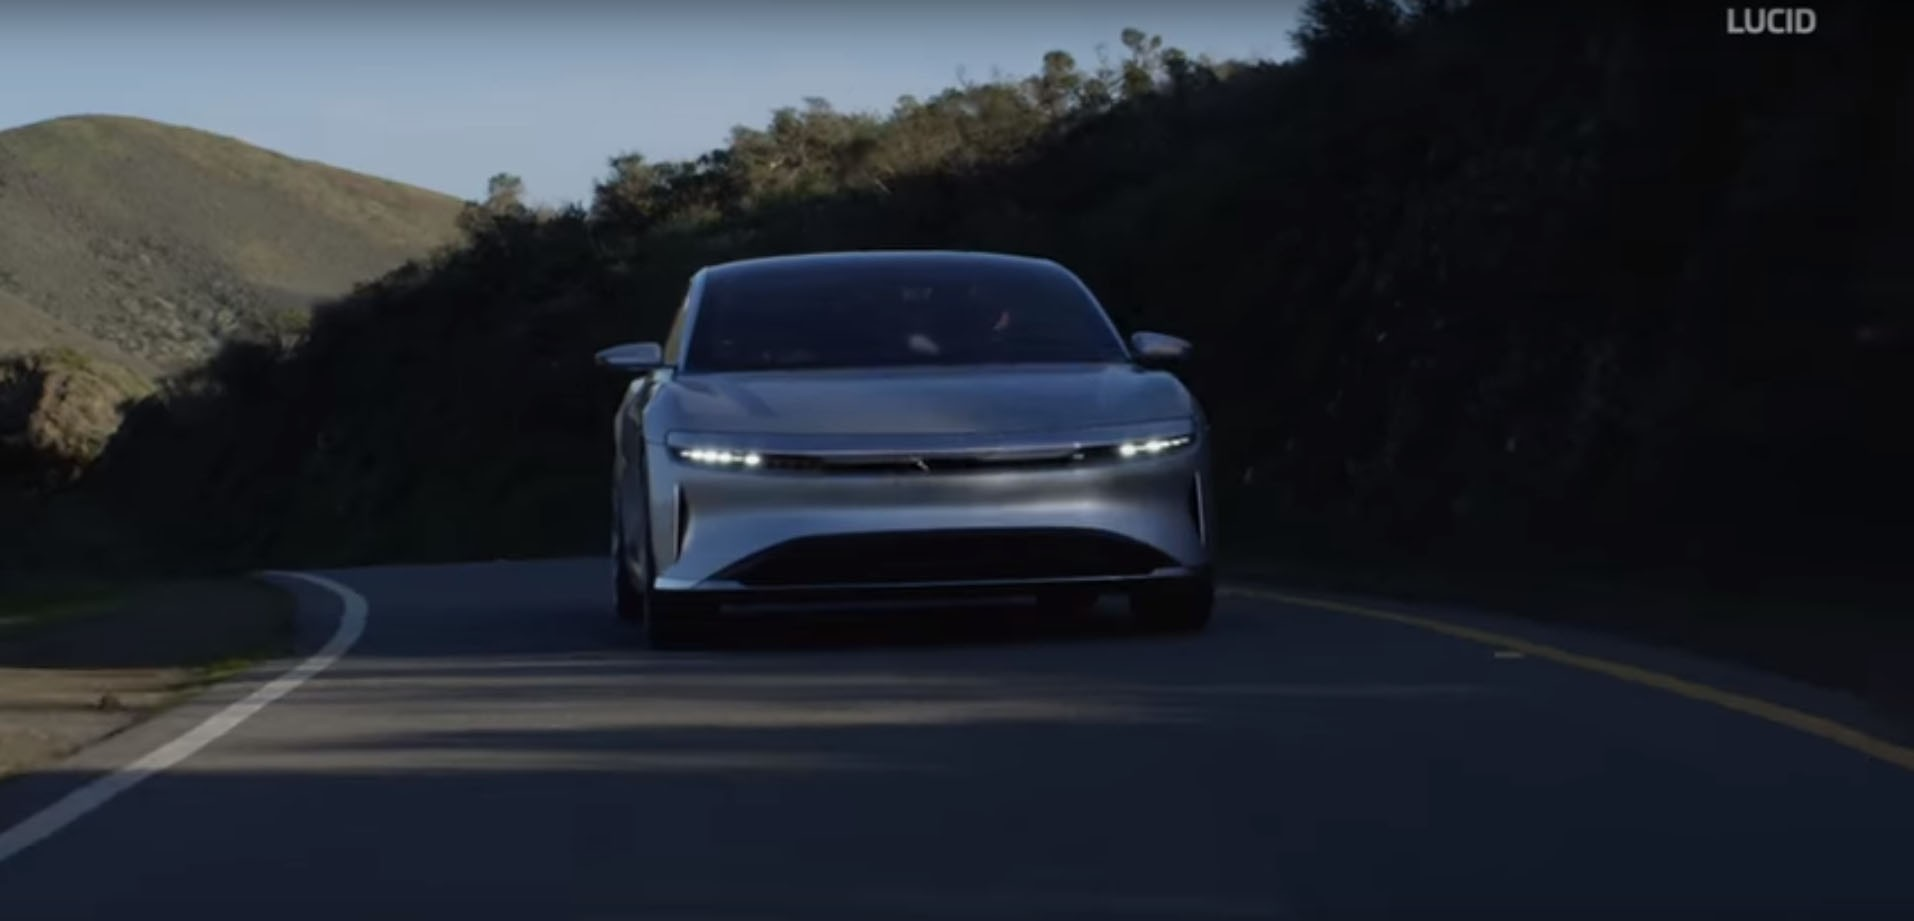 Lucid Motors Ready To Revolutionize The Electric Car With Its